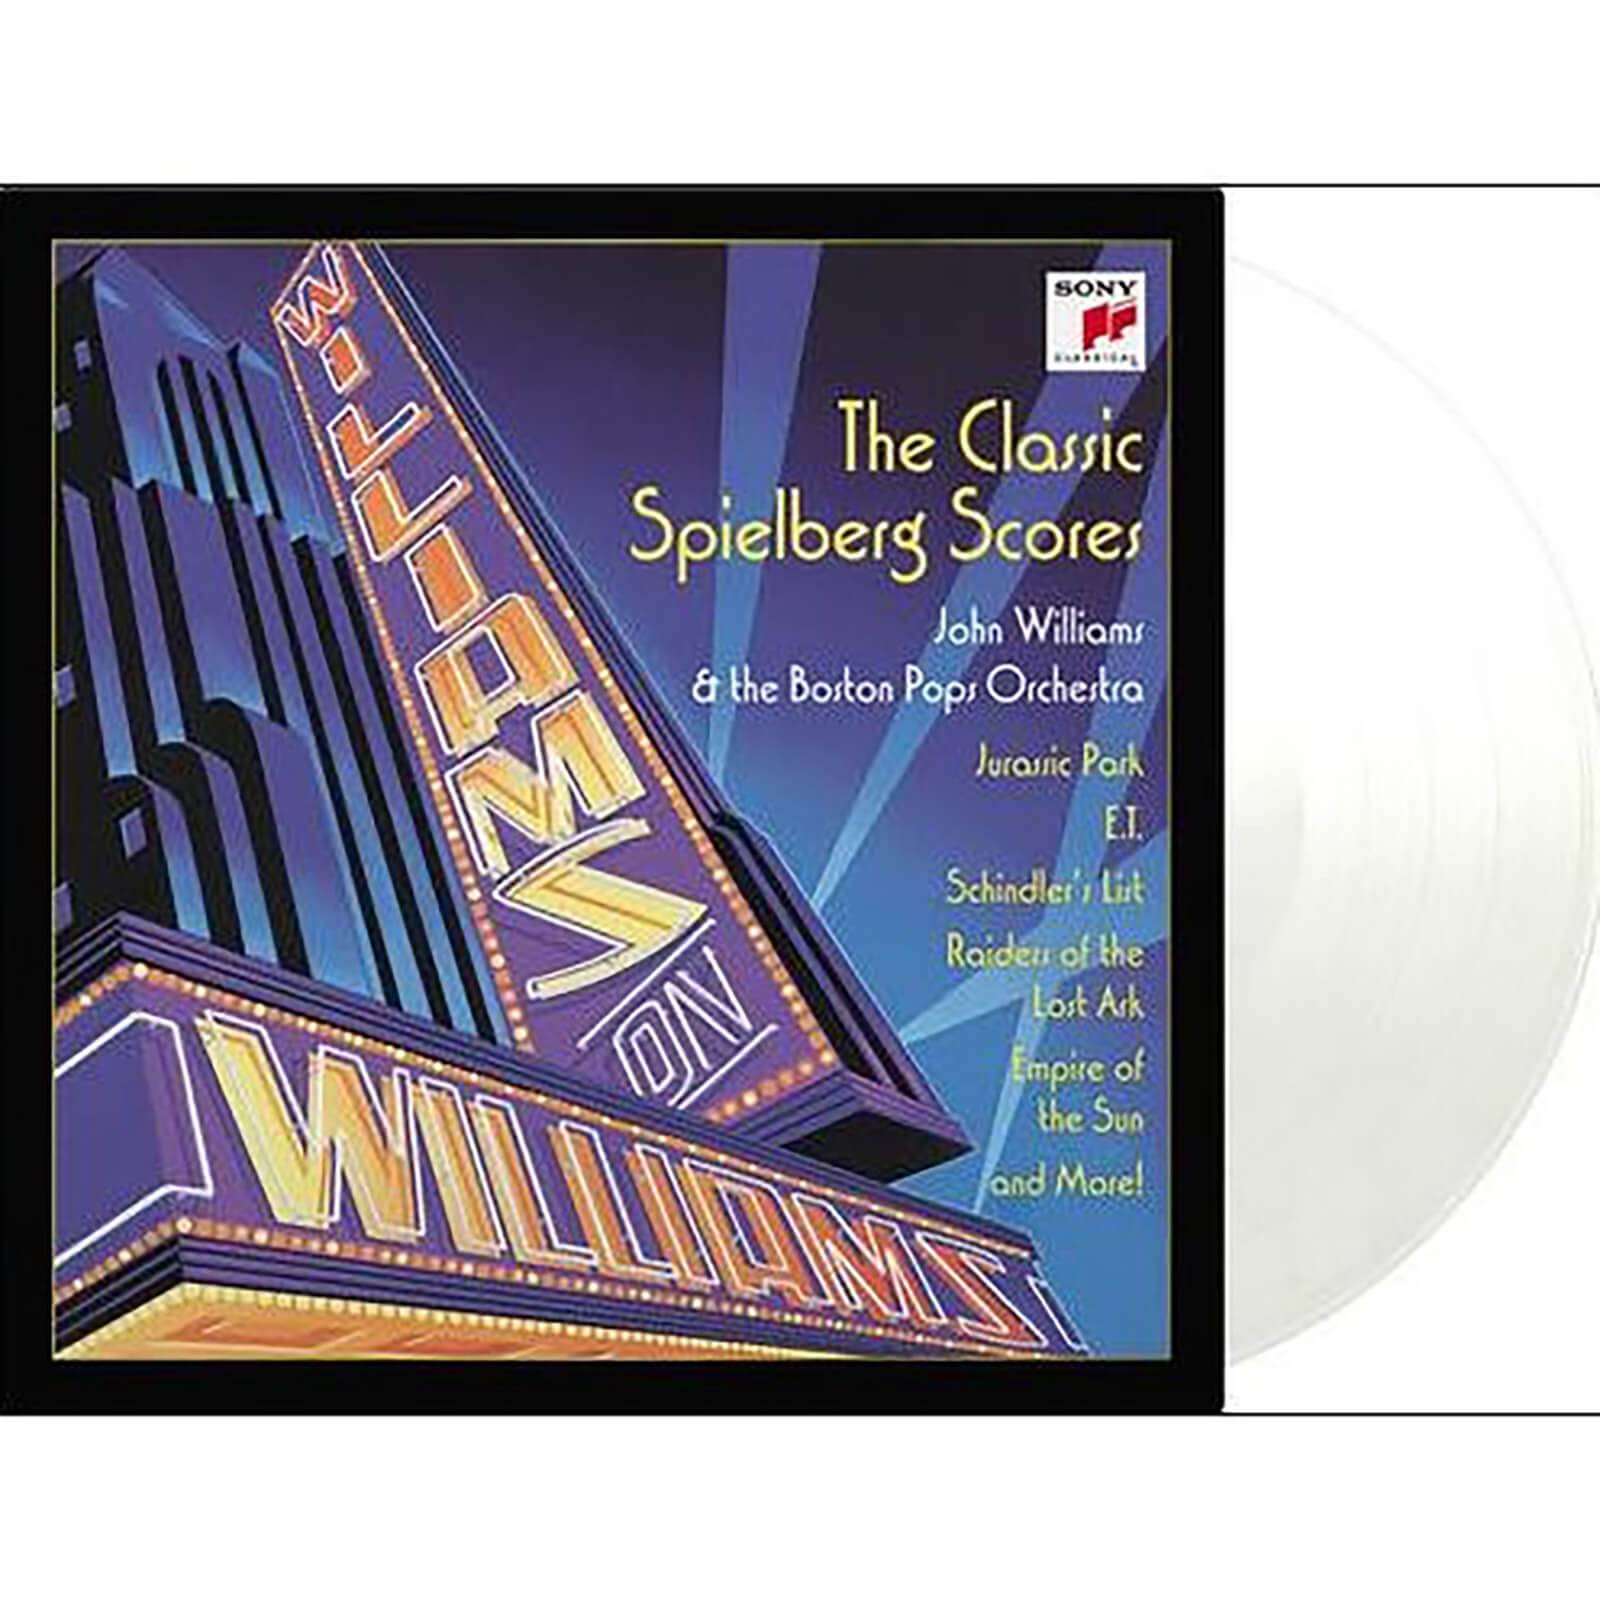 Music On Vinyl: At The Movies John Williams - Williams On Williams: The Classic Spielberg Scores [2LP] (LIMITED TRANSPARENT 180 Gram Audiophile Vinyl, gatefold, PVC sleeve, numbered to 1500)